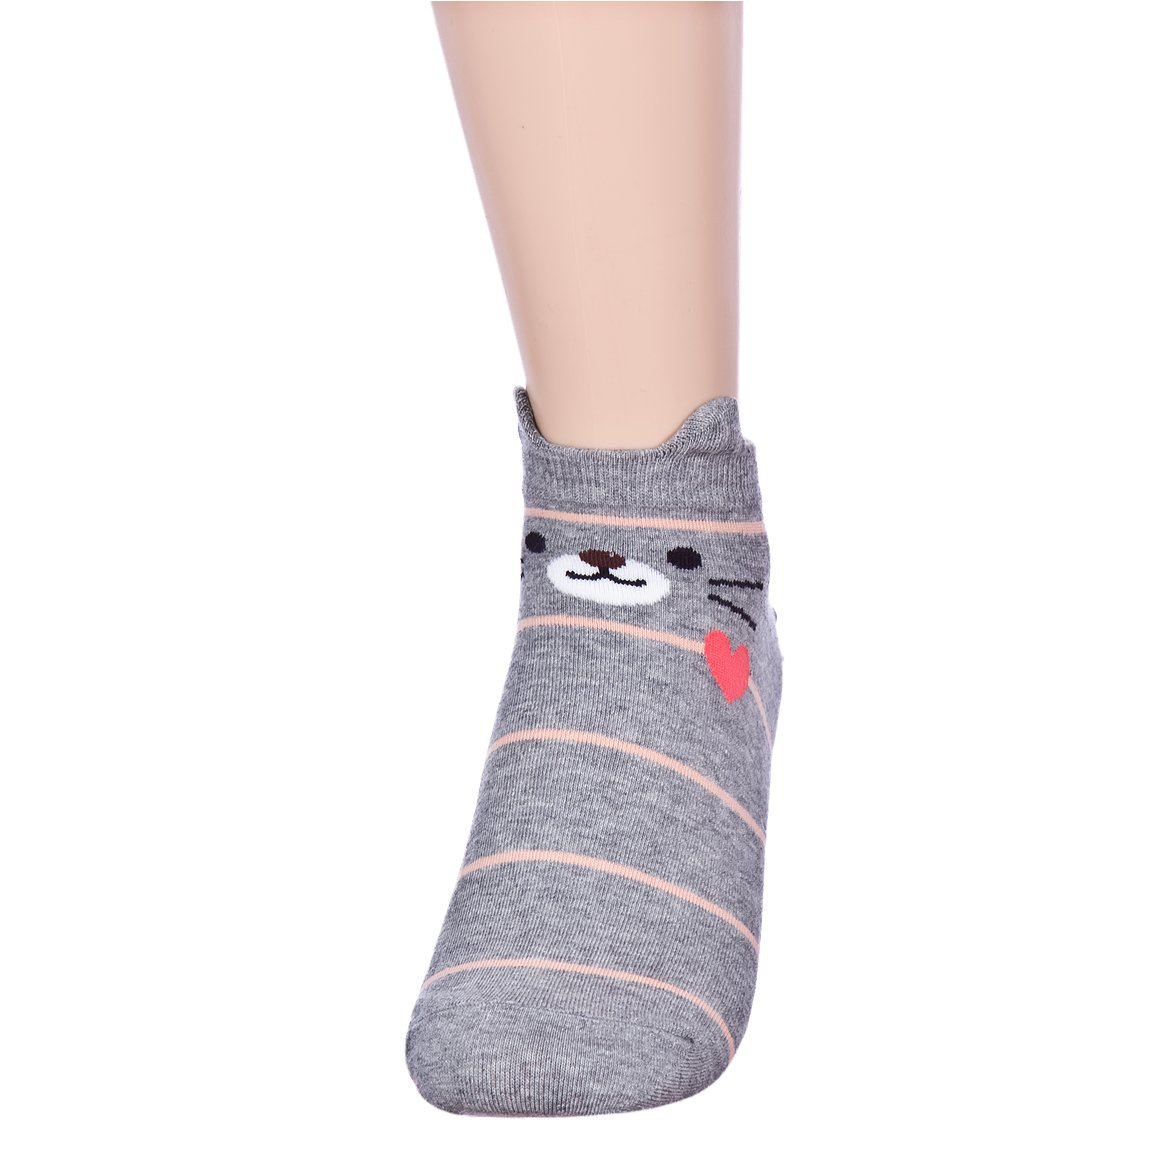 Fall in Love Animal Charater Casual Sneakers Socks (Onesize, 5 Pairs) by Dani's Choice (Image #3)